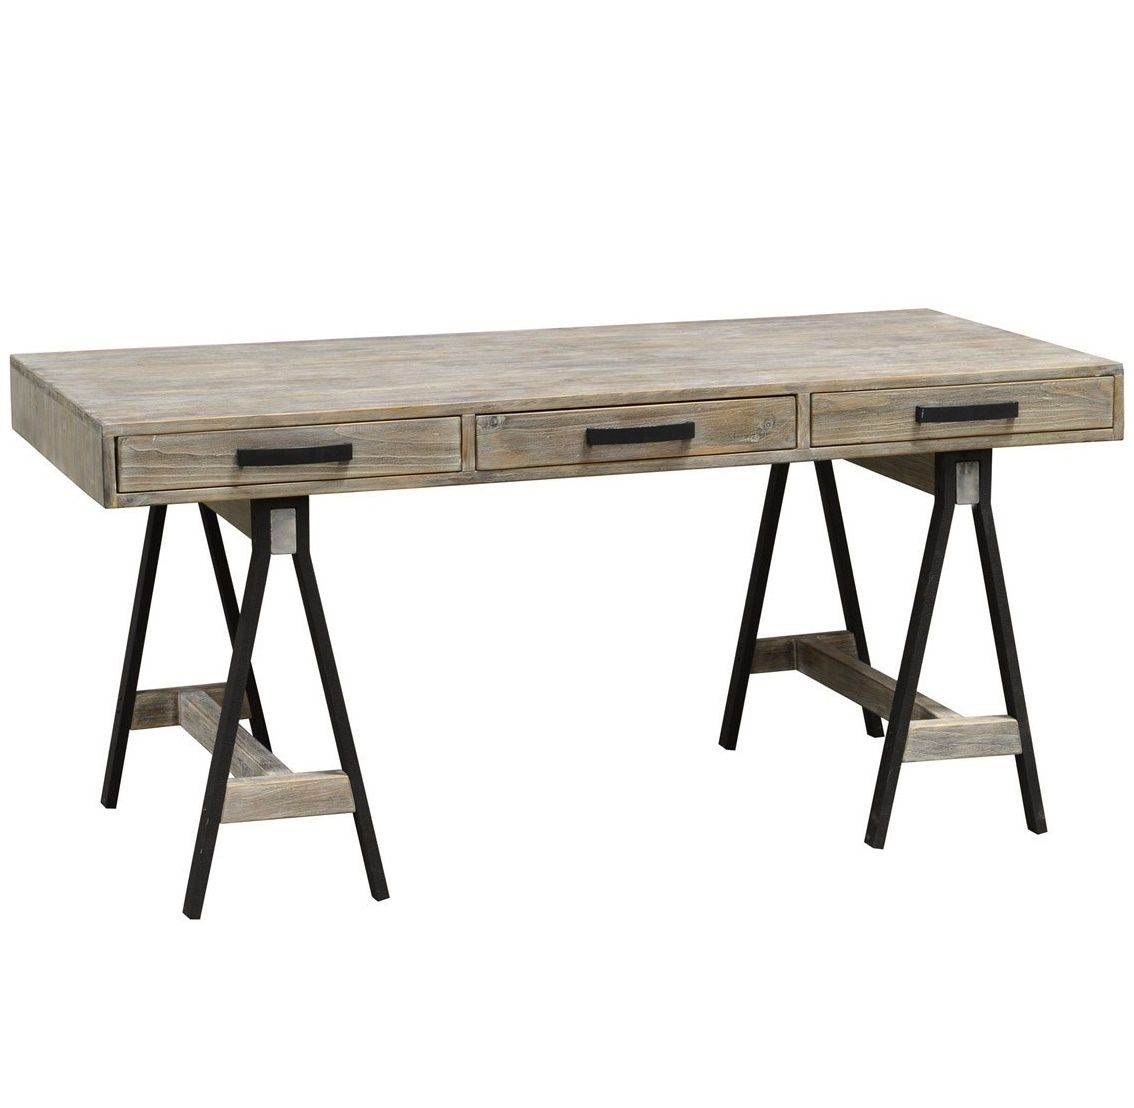 Juliana Sawhorse Reclaimed Wood Desk | Desks, Woods and Office spaces